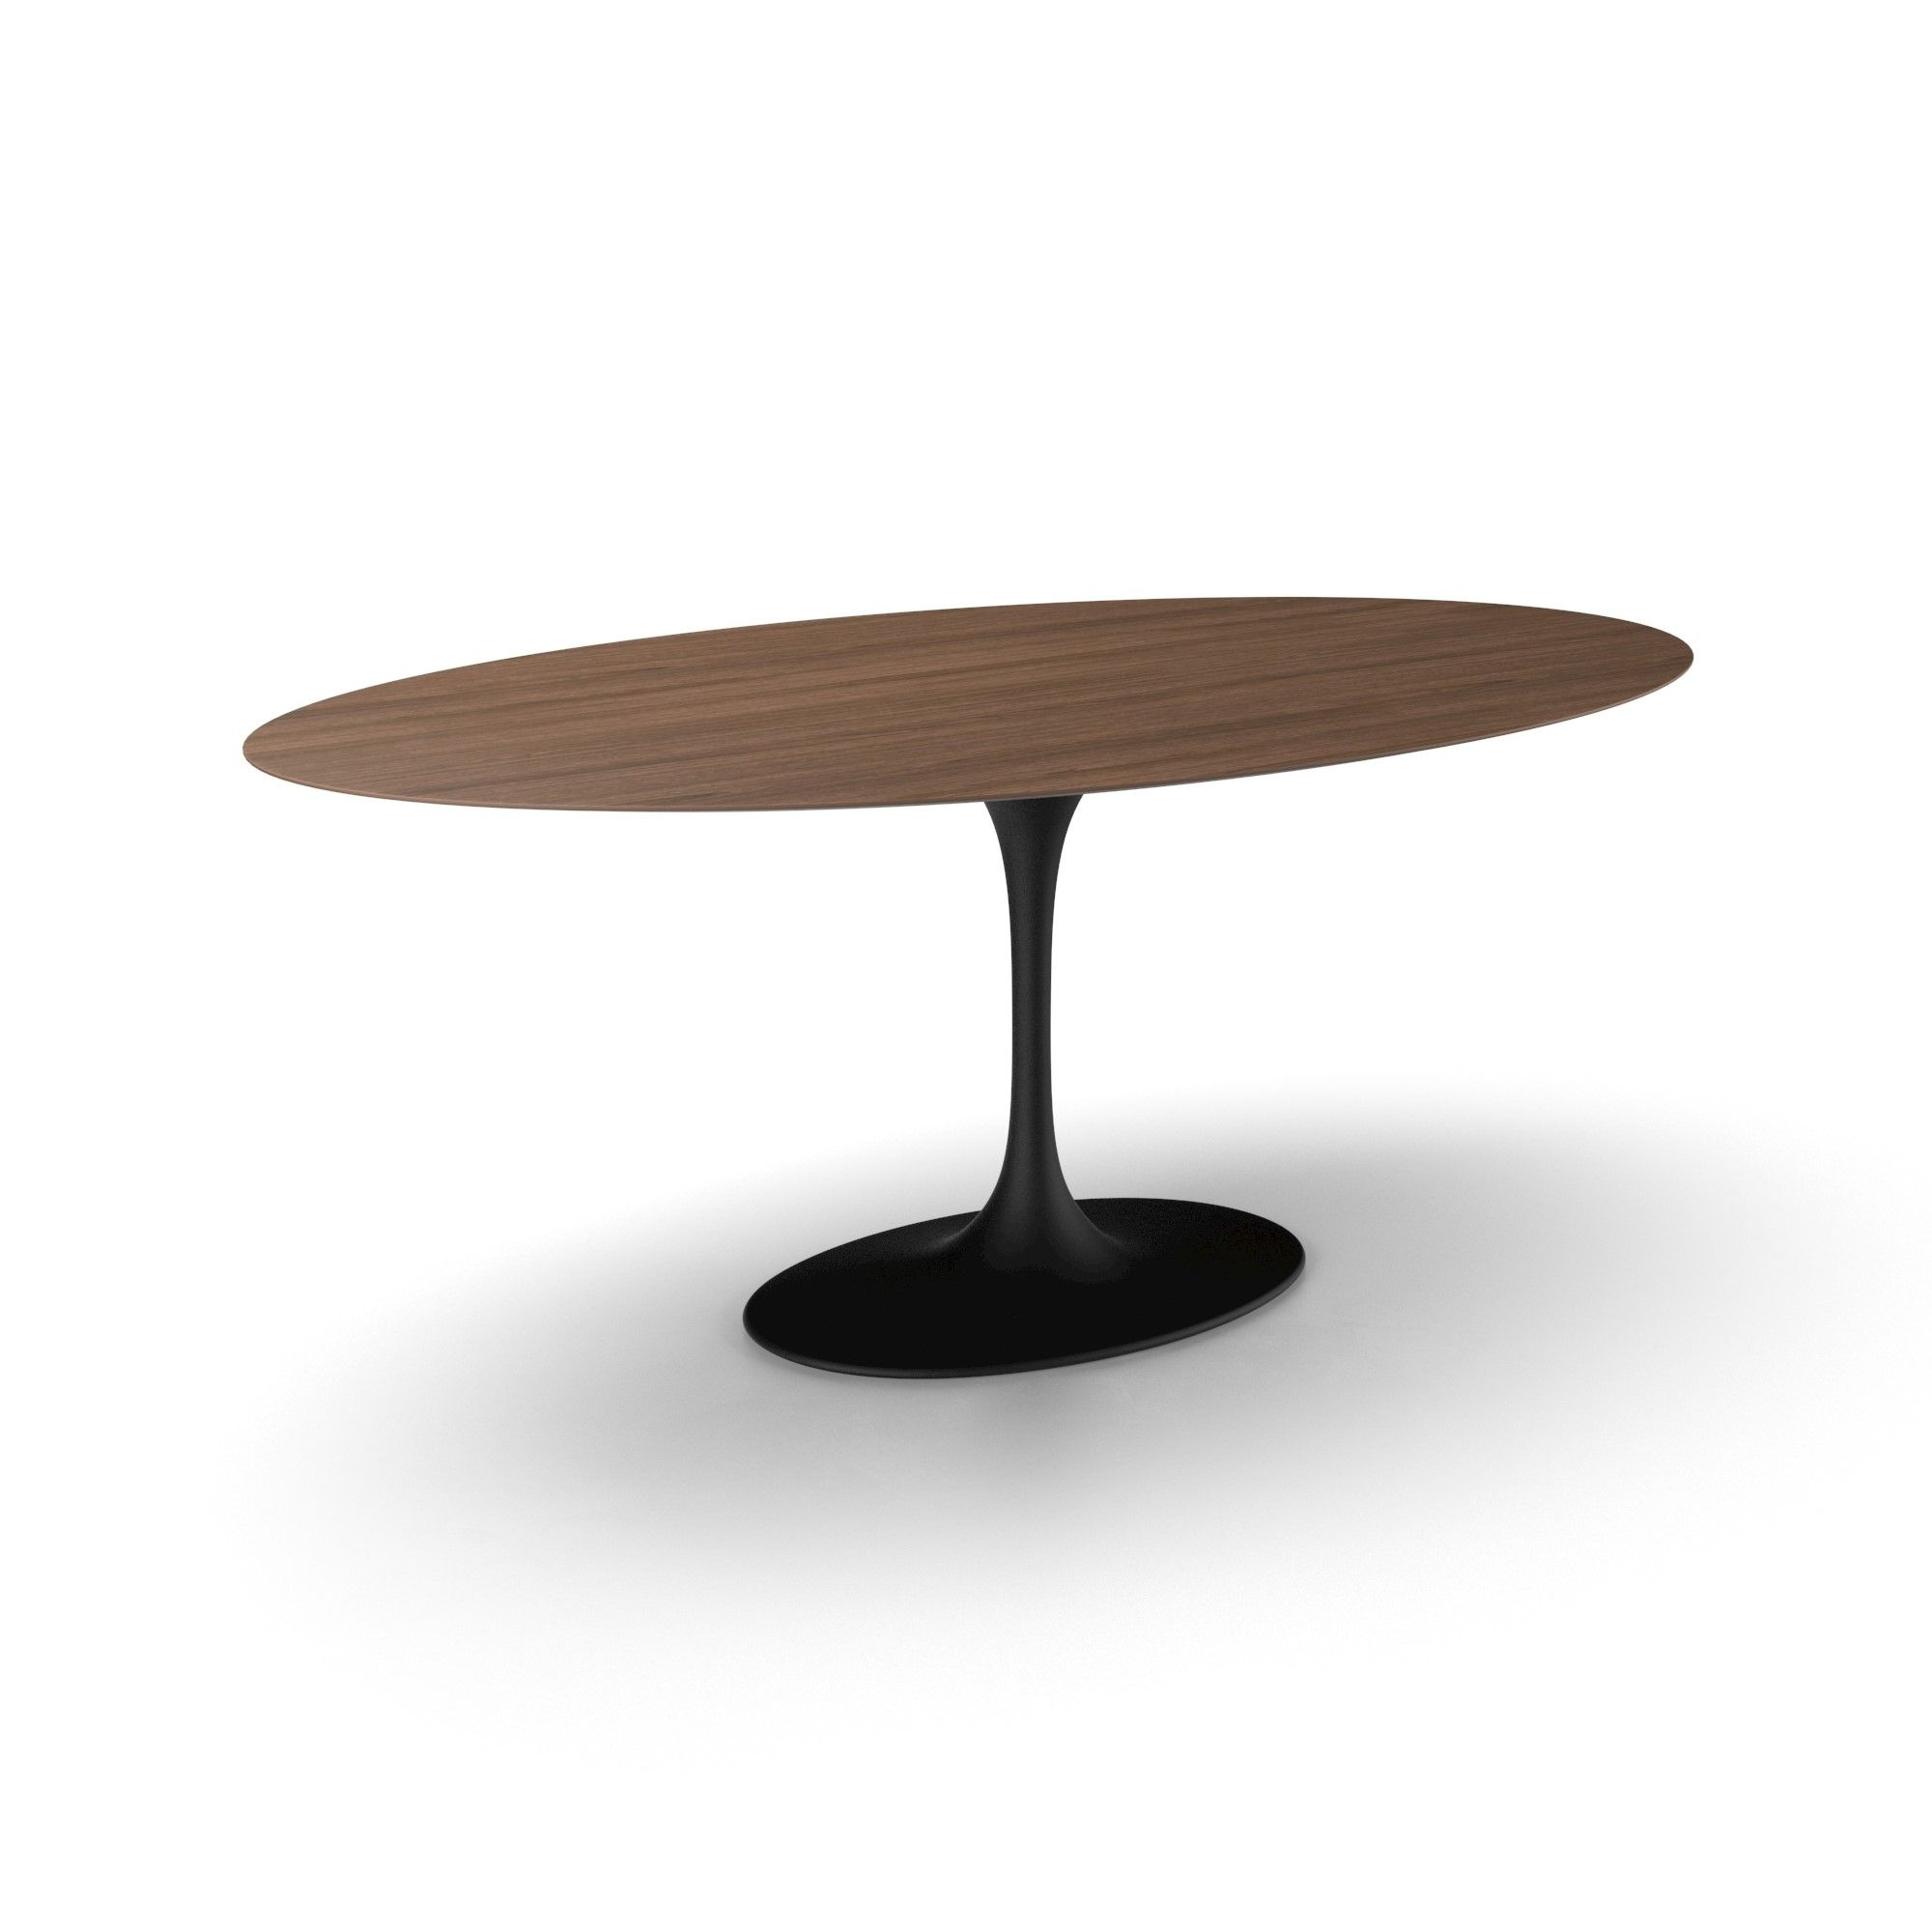 Contemporary Italian Designer Oval Walnut Dining Table With